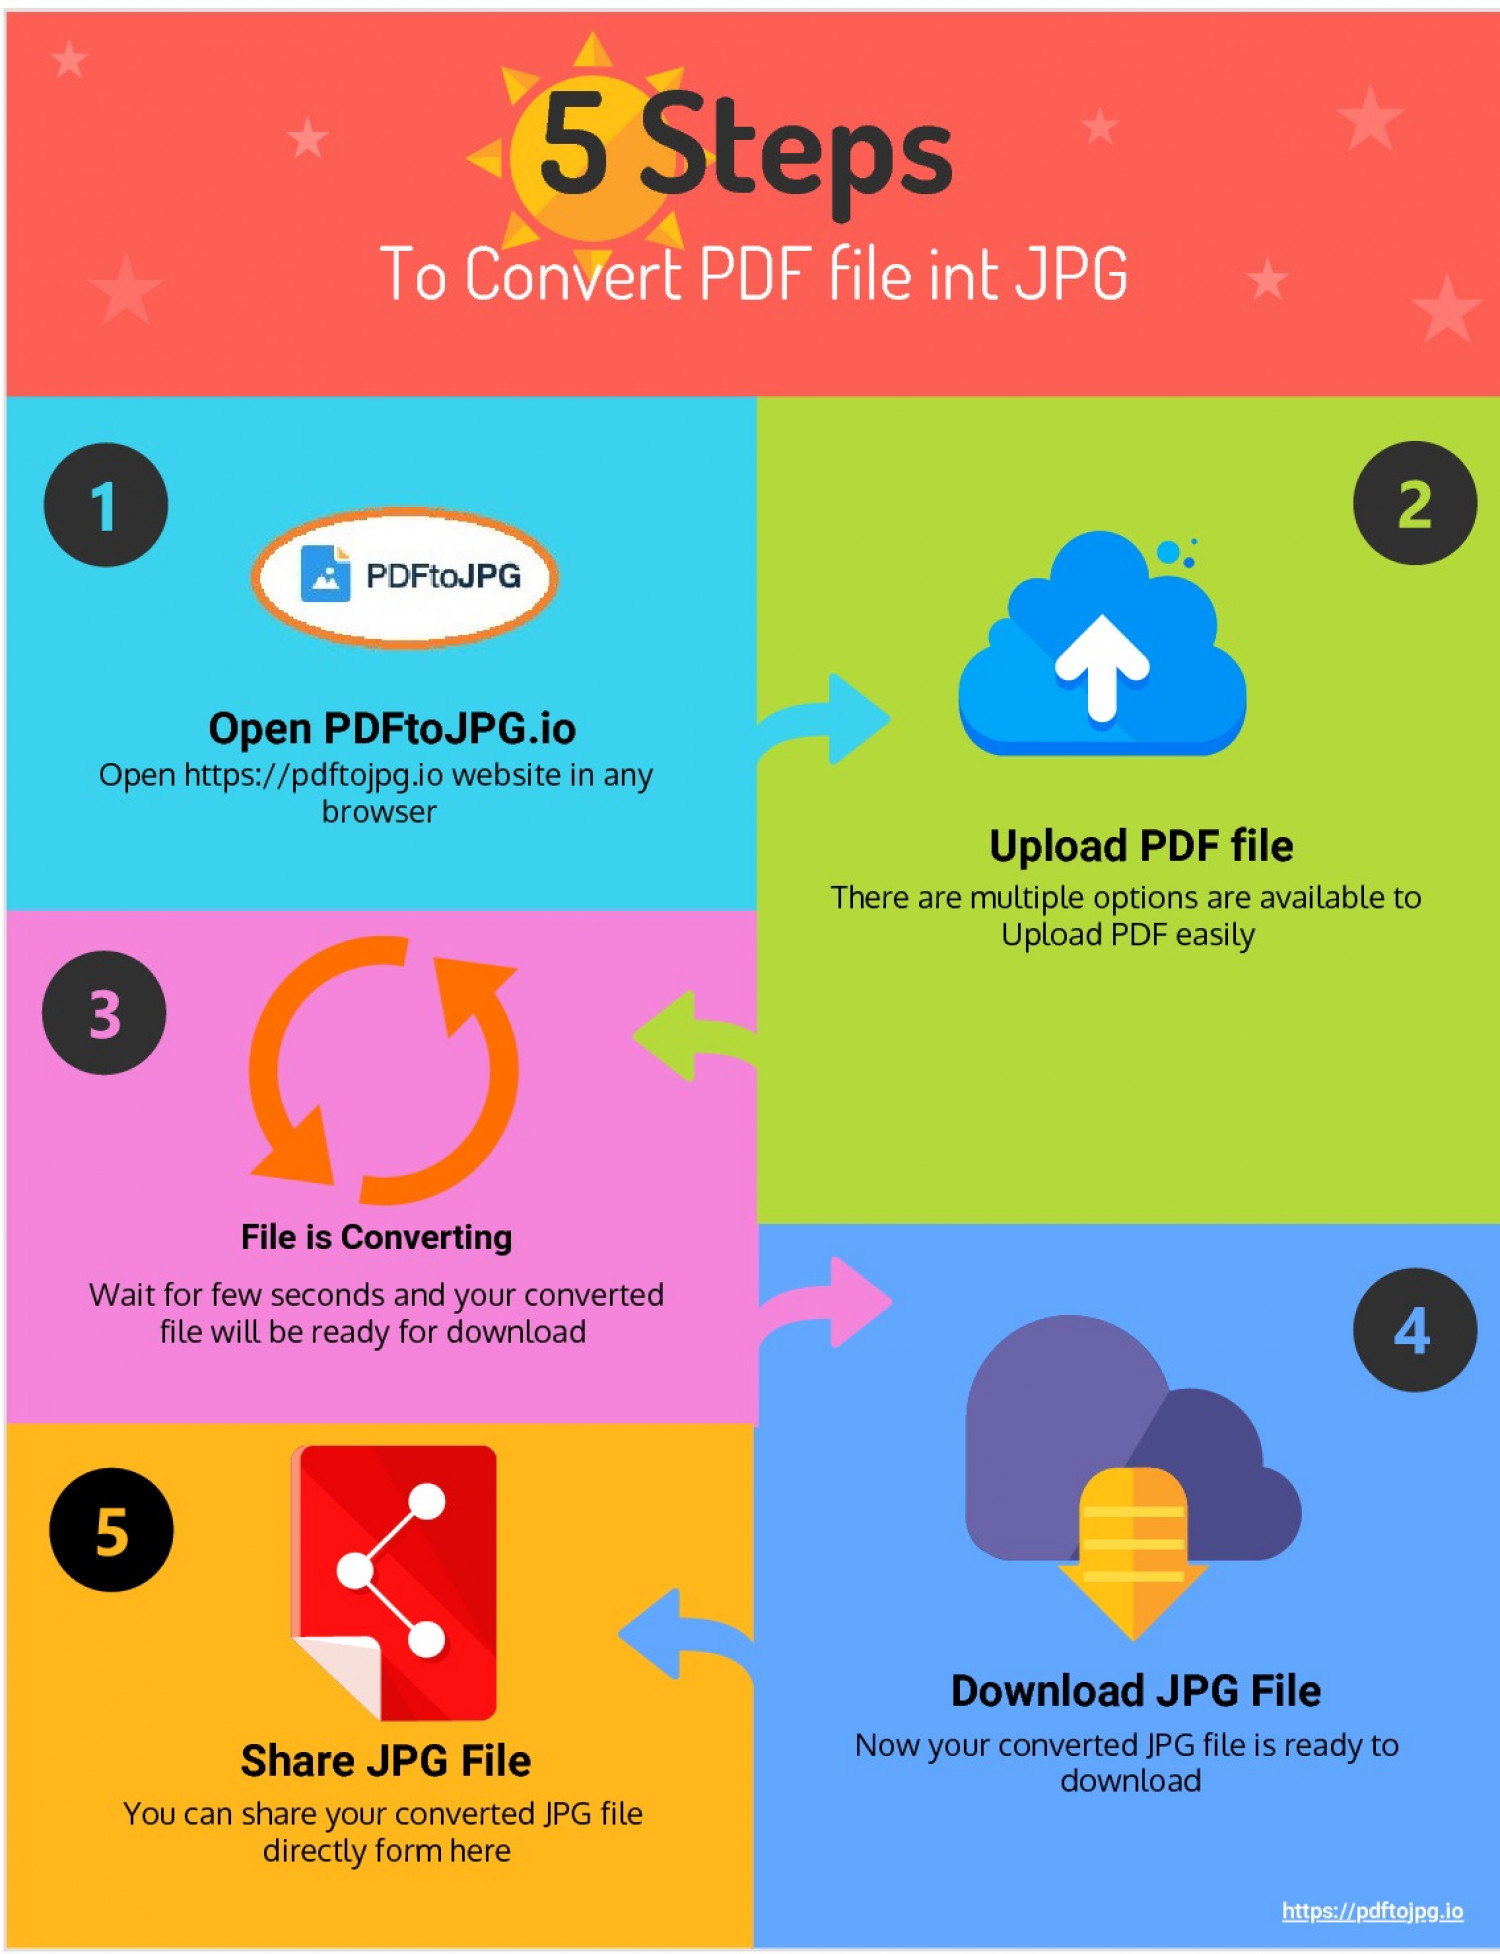 5 Steps to Convert JPG from PDF Infographic